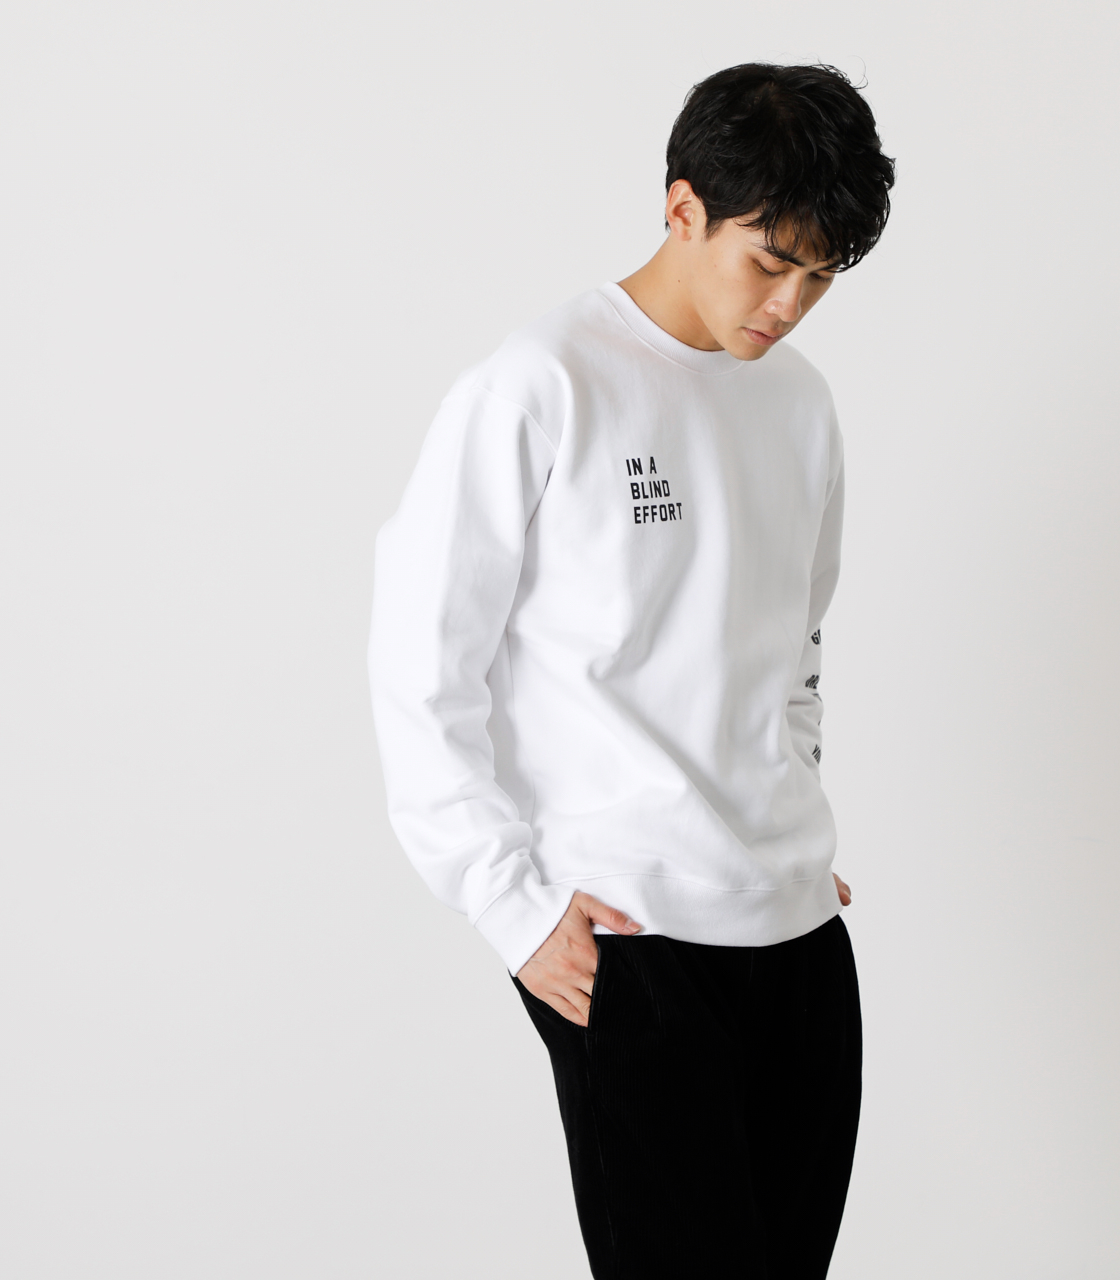 ONE ARM MESSAGE PULLOVER/ワンアームメッセージプルオーバー 詳細画像 WHT 3